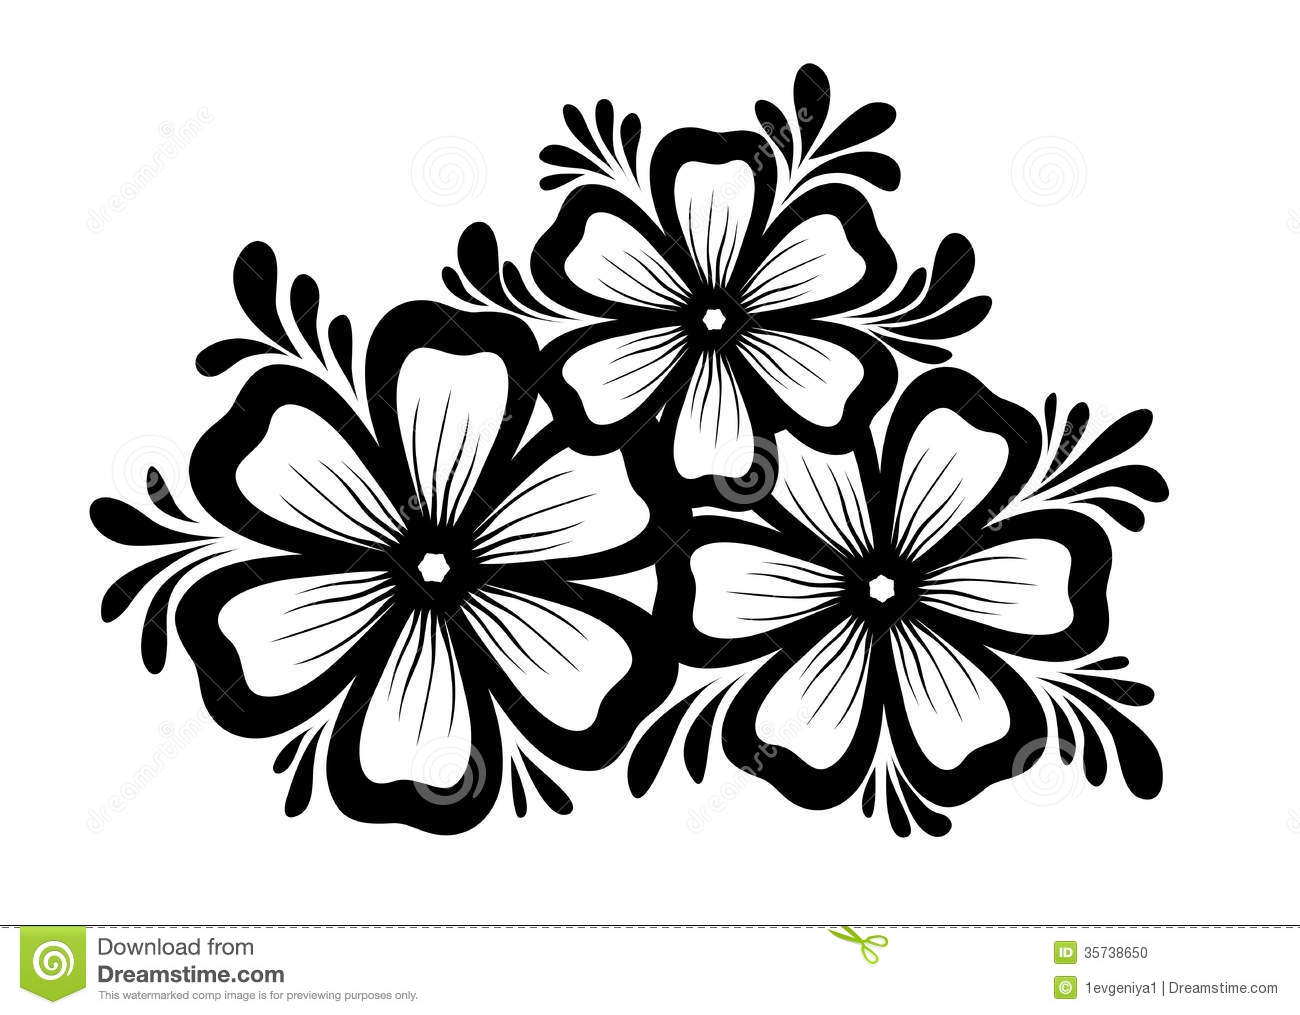 flower designs black and white